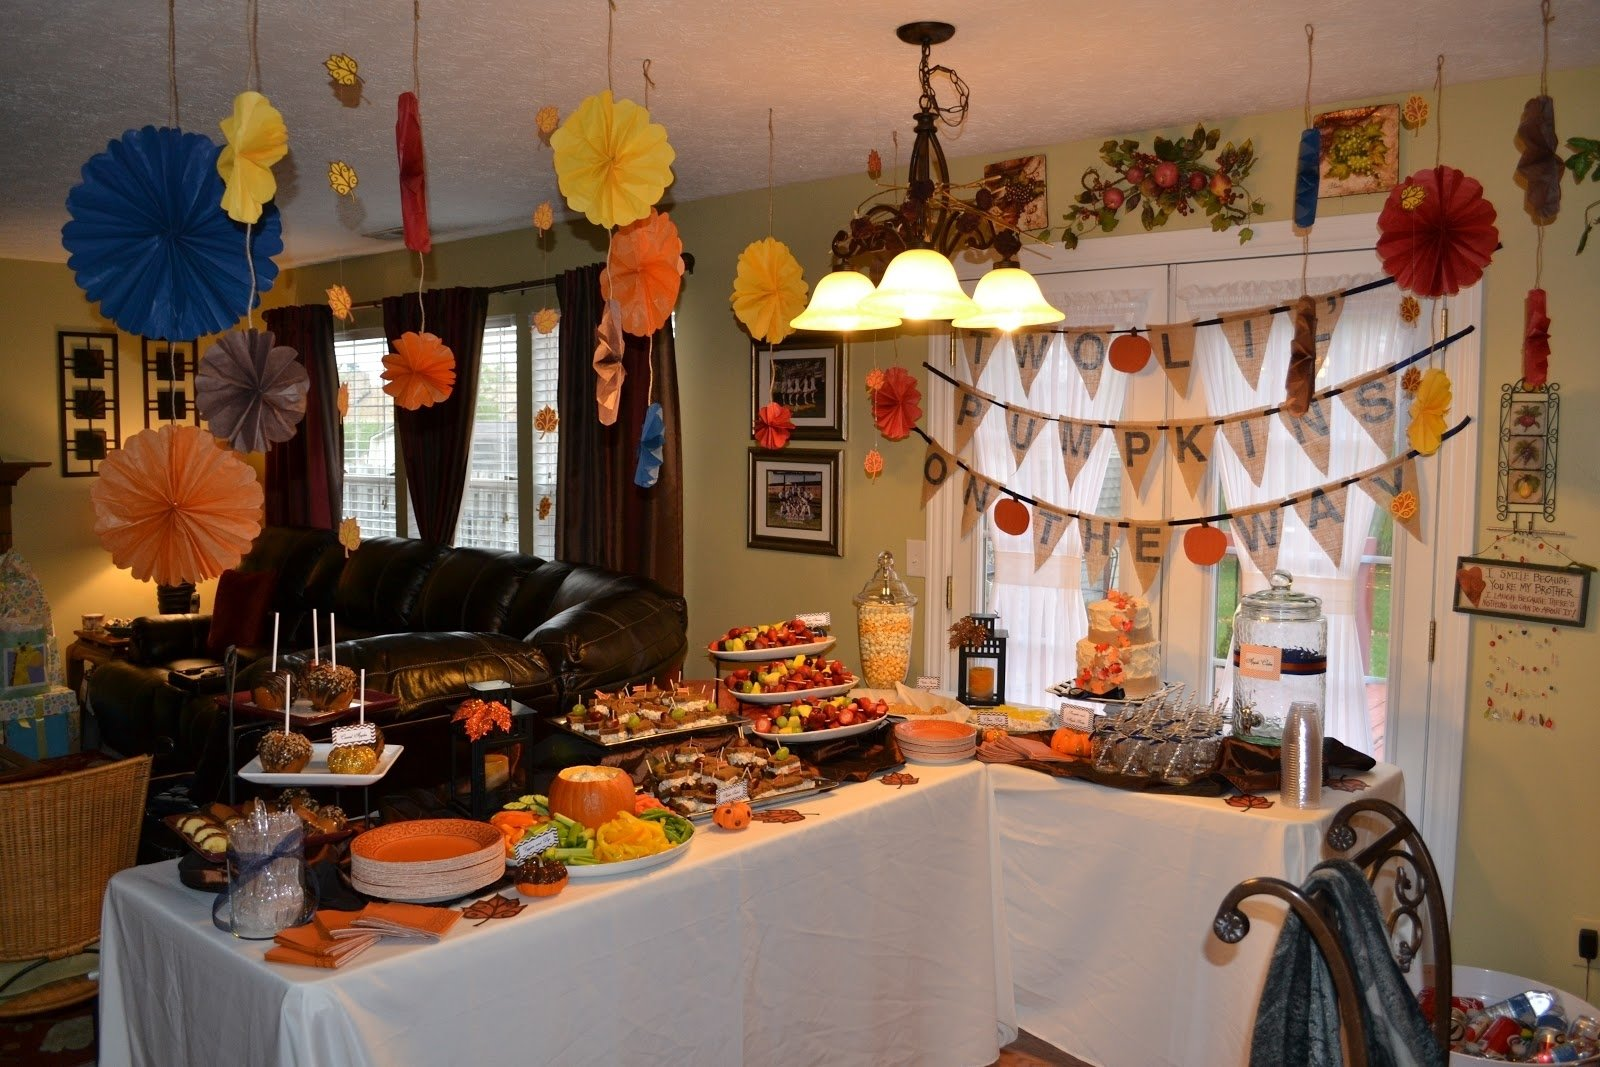 10 Gorgeous Fall Themed Baby Shower Ideas gallery fall baby shower decorations home design ideas fall baby 2020